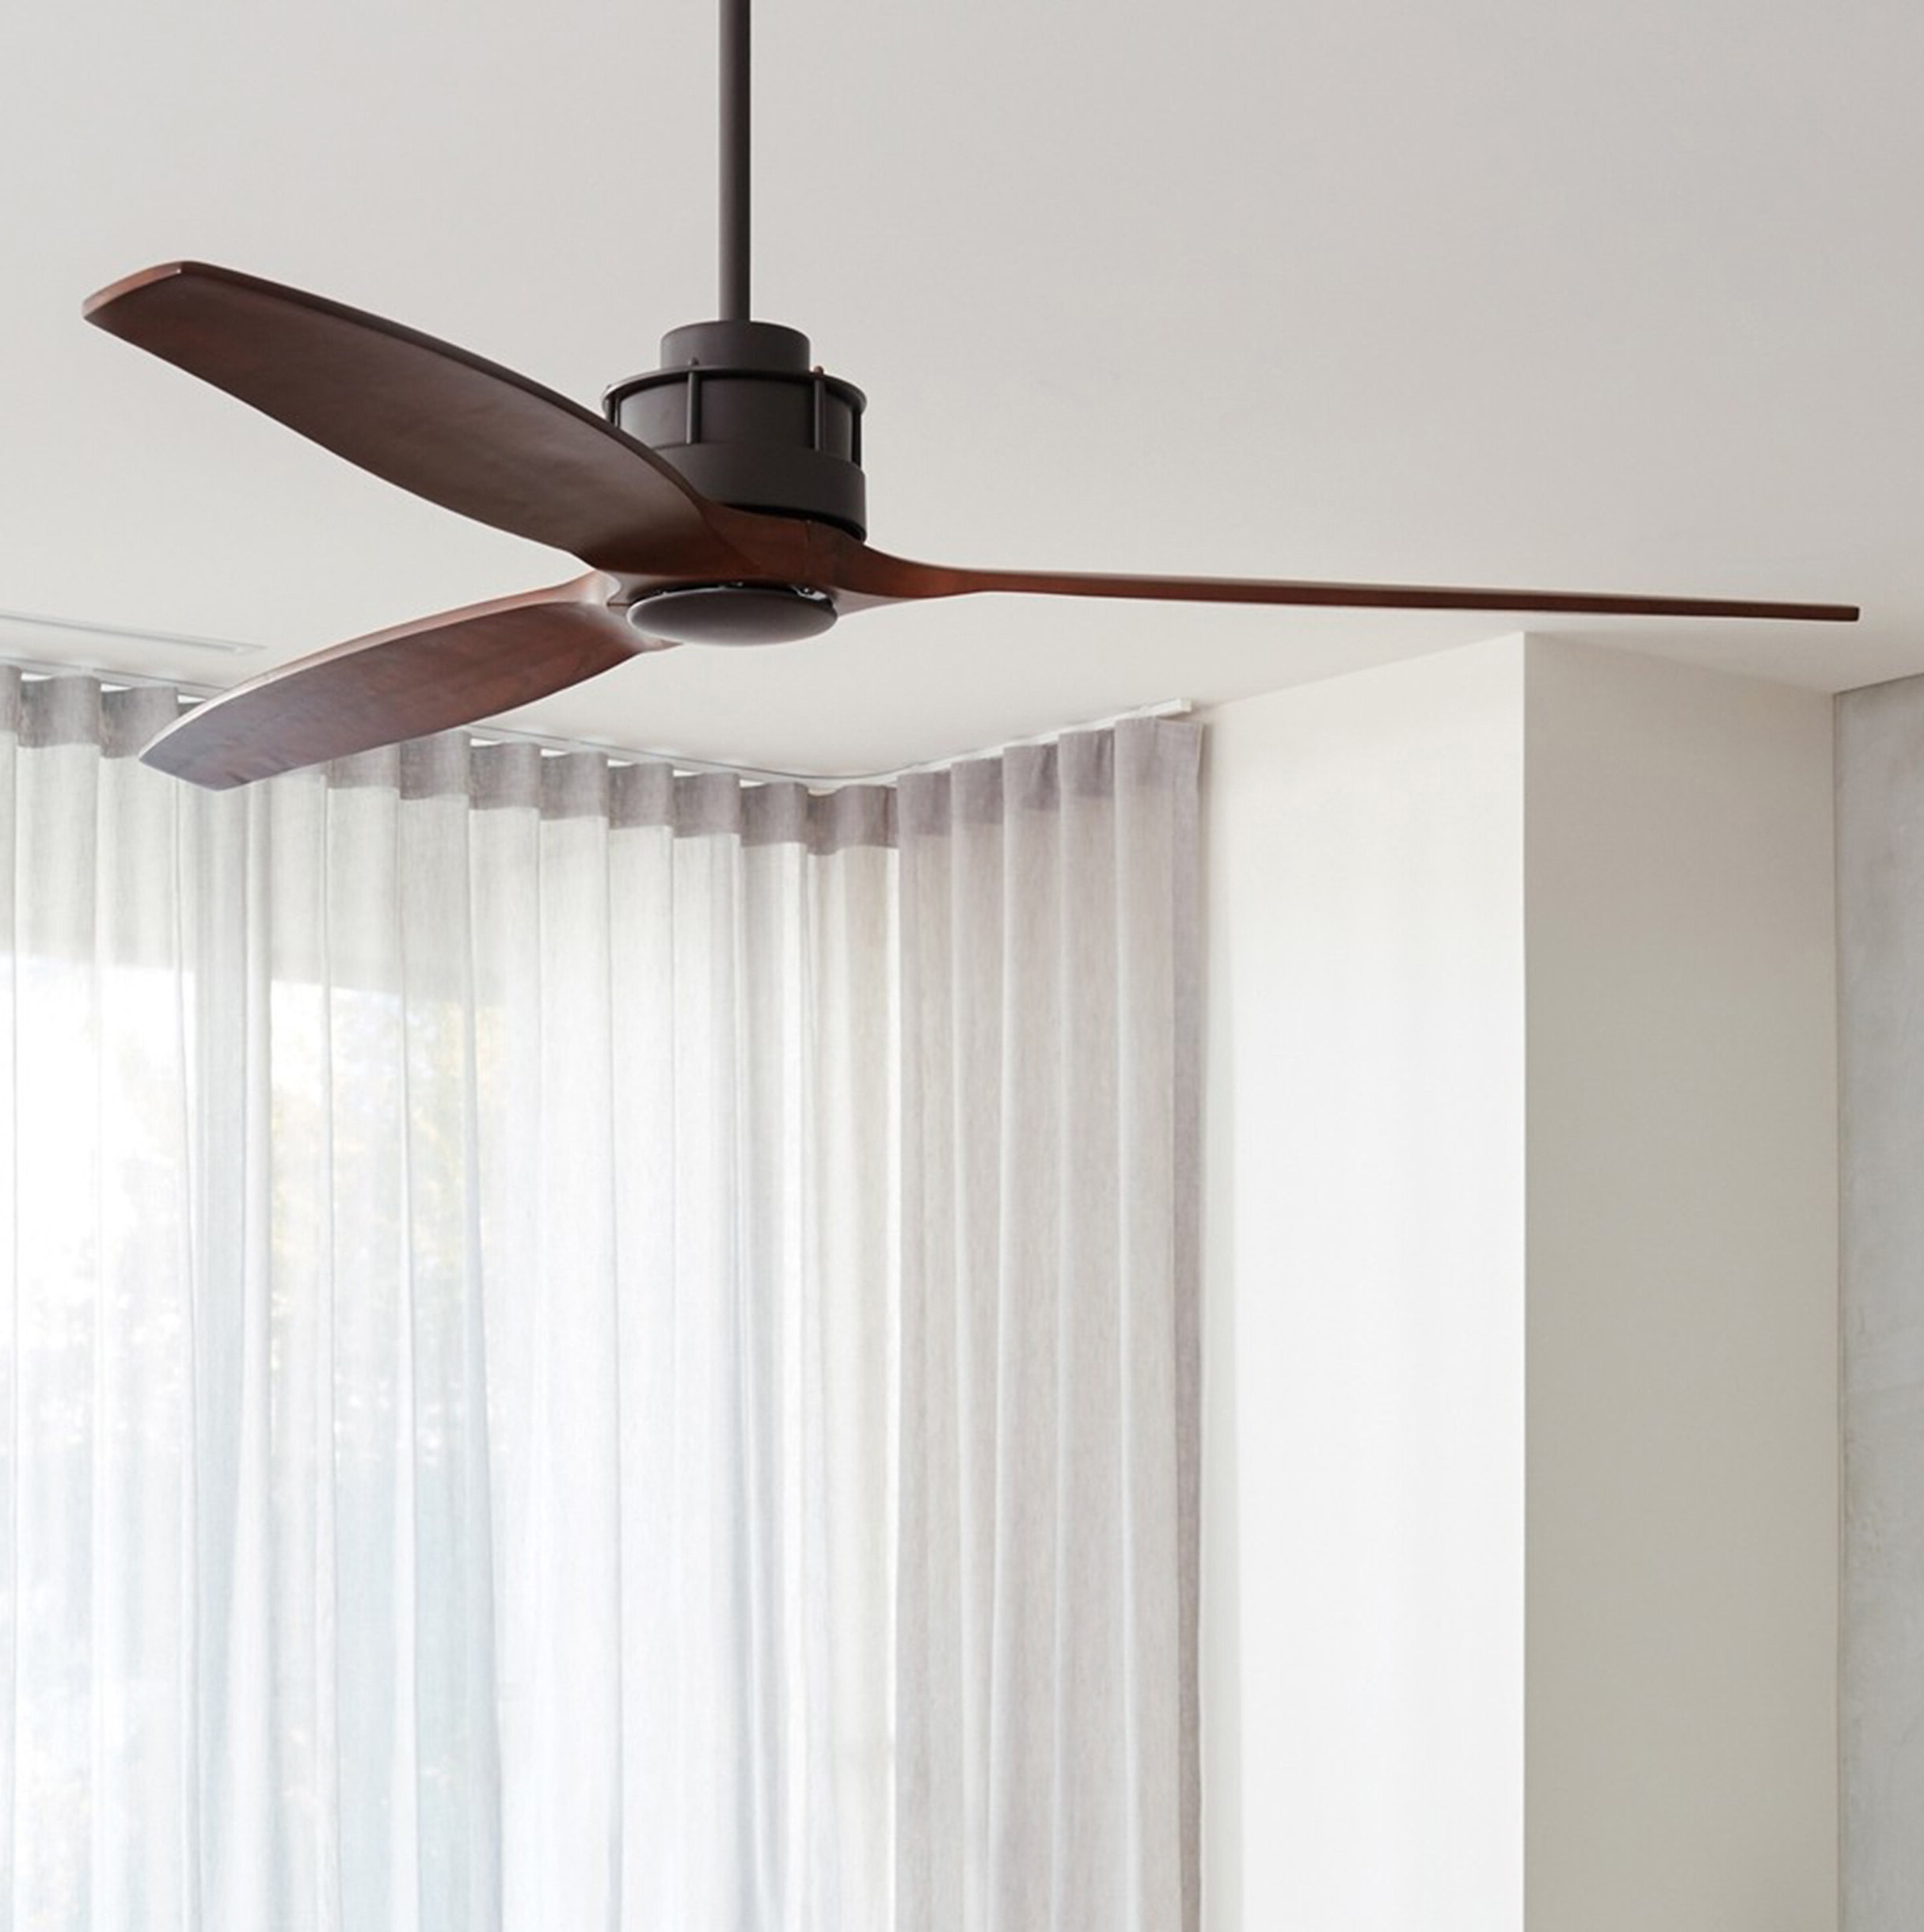 """60"""" Hutton Akmani 3 Blade Smart Ceiling Fan With Remote With Regard To Current 60 Aviation 3 Blade Ceiling Fans (View 4 of 20)"""